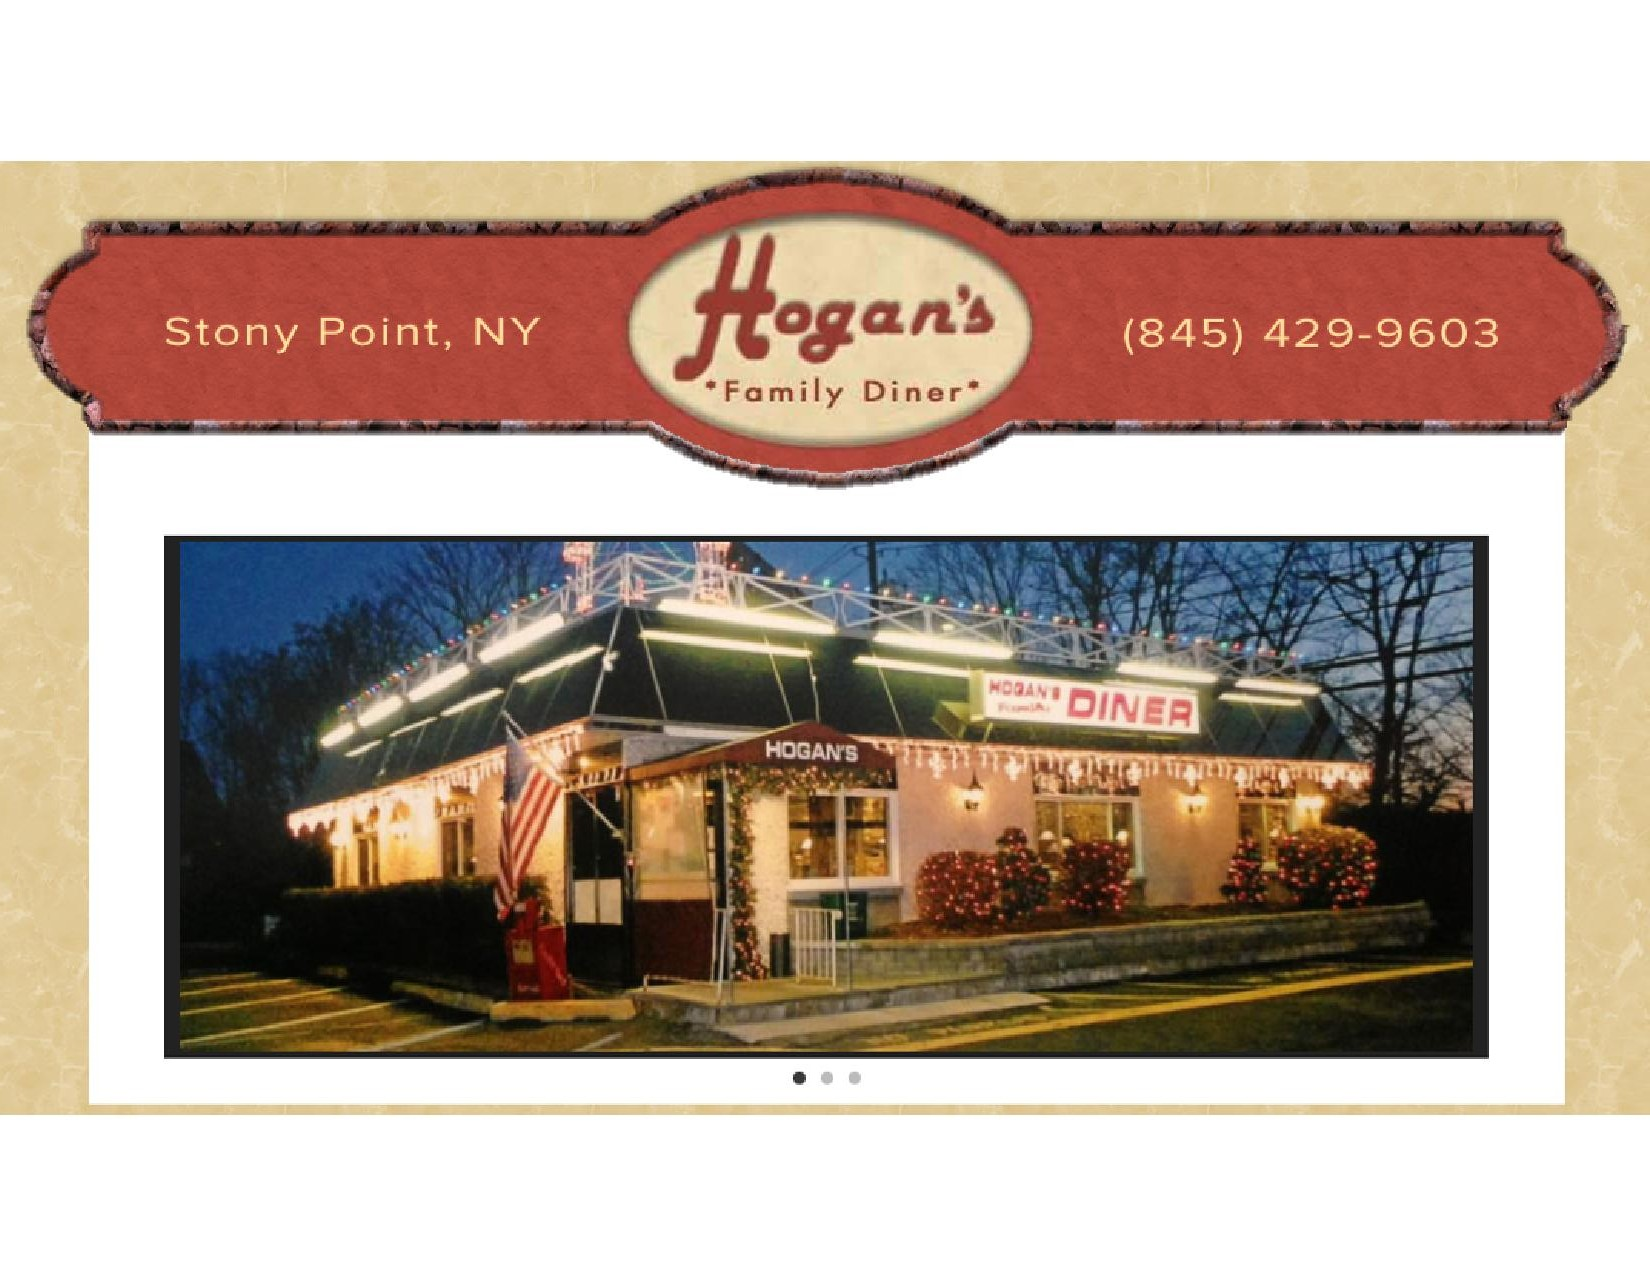 Hogan's Family Diner